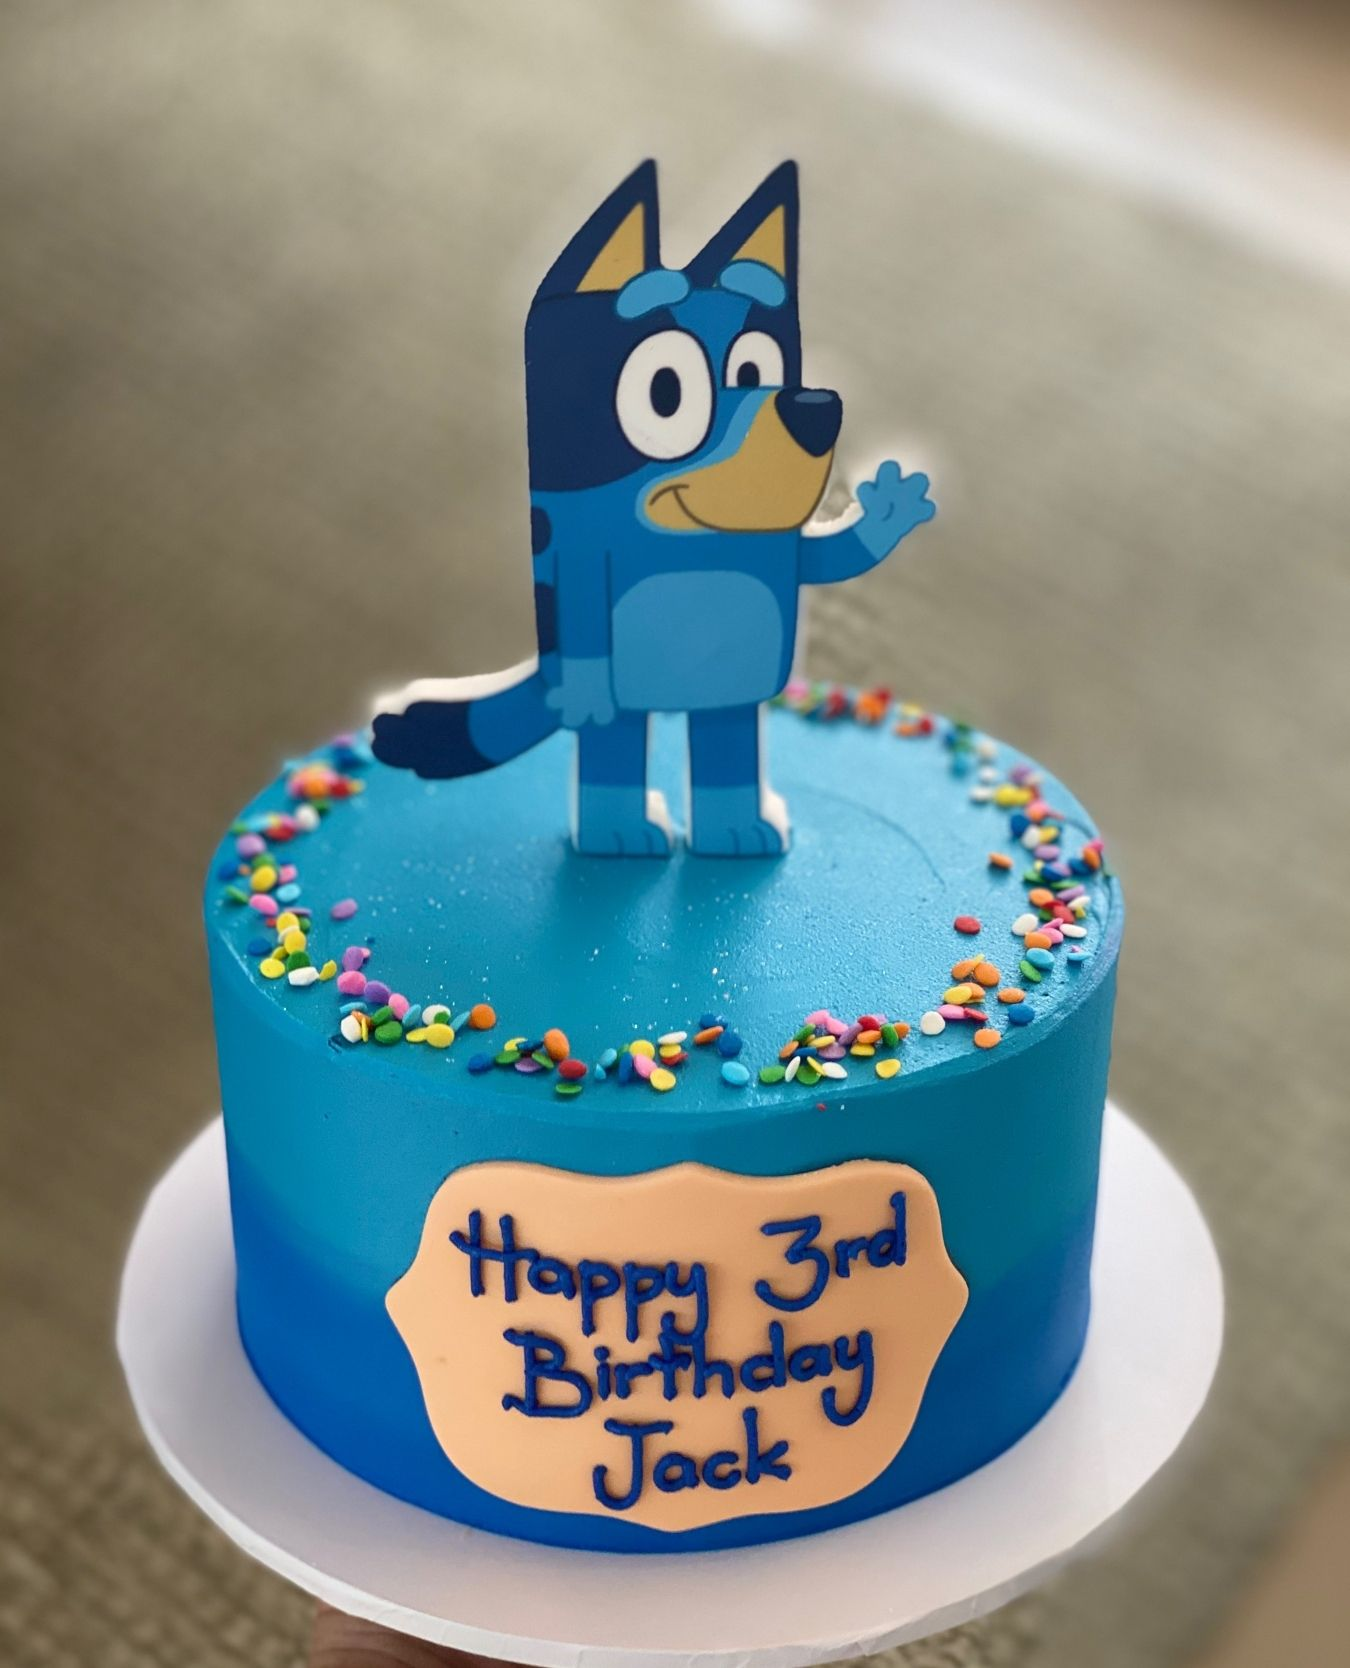 Bluey Cake in 2020 Cake, Novelty cakes, Cake creations